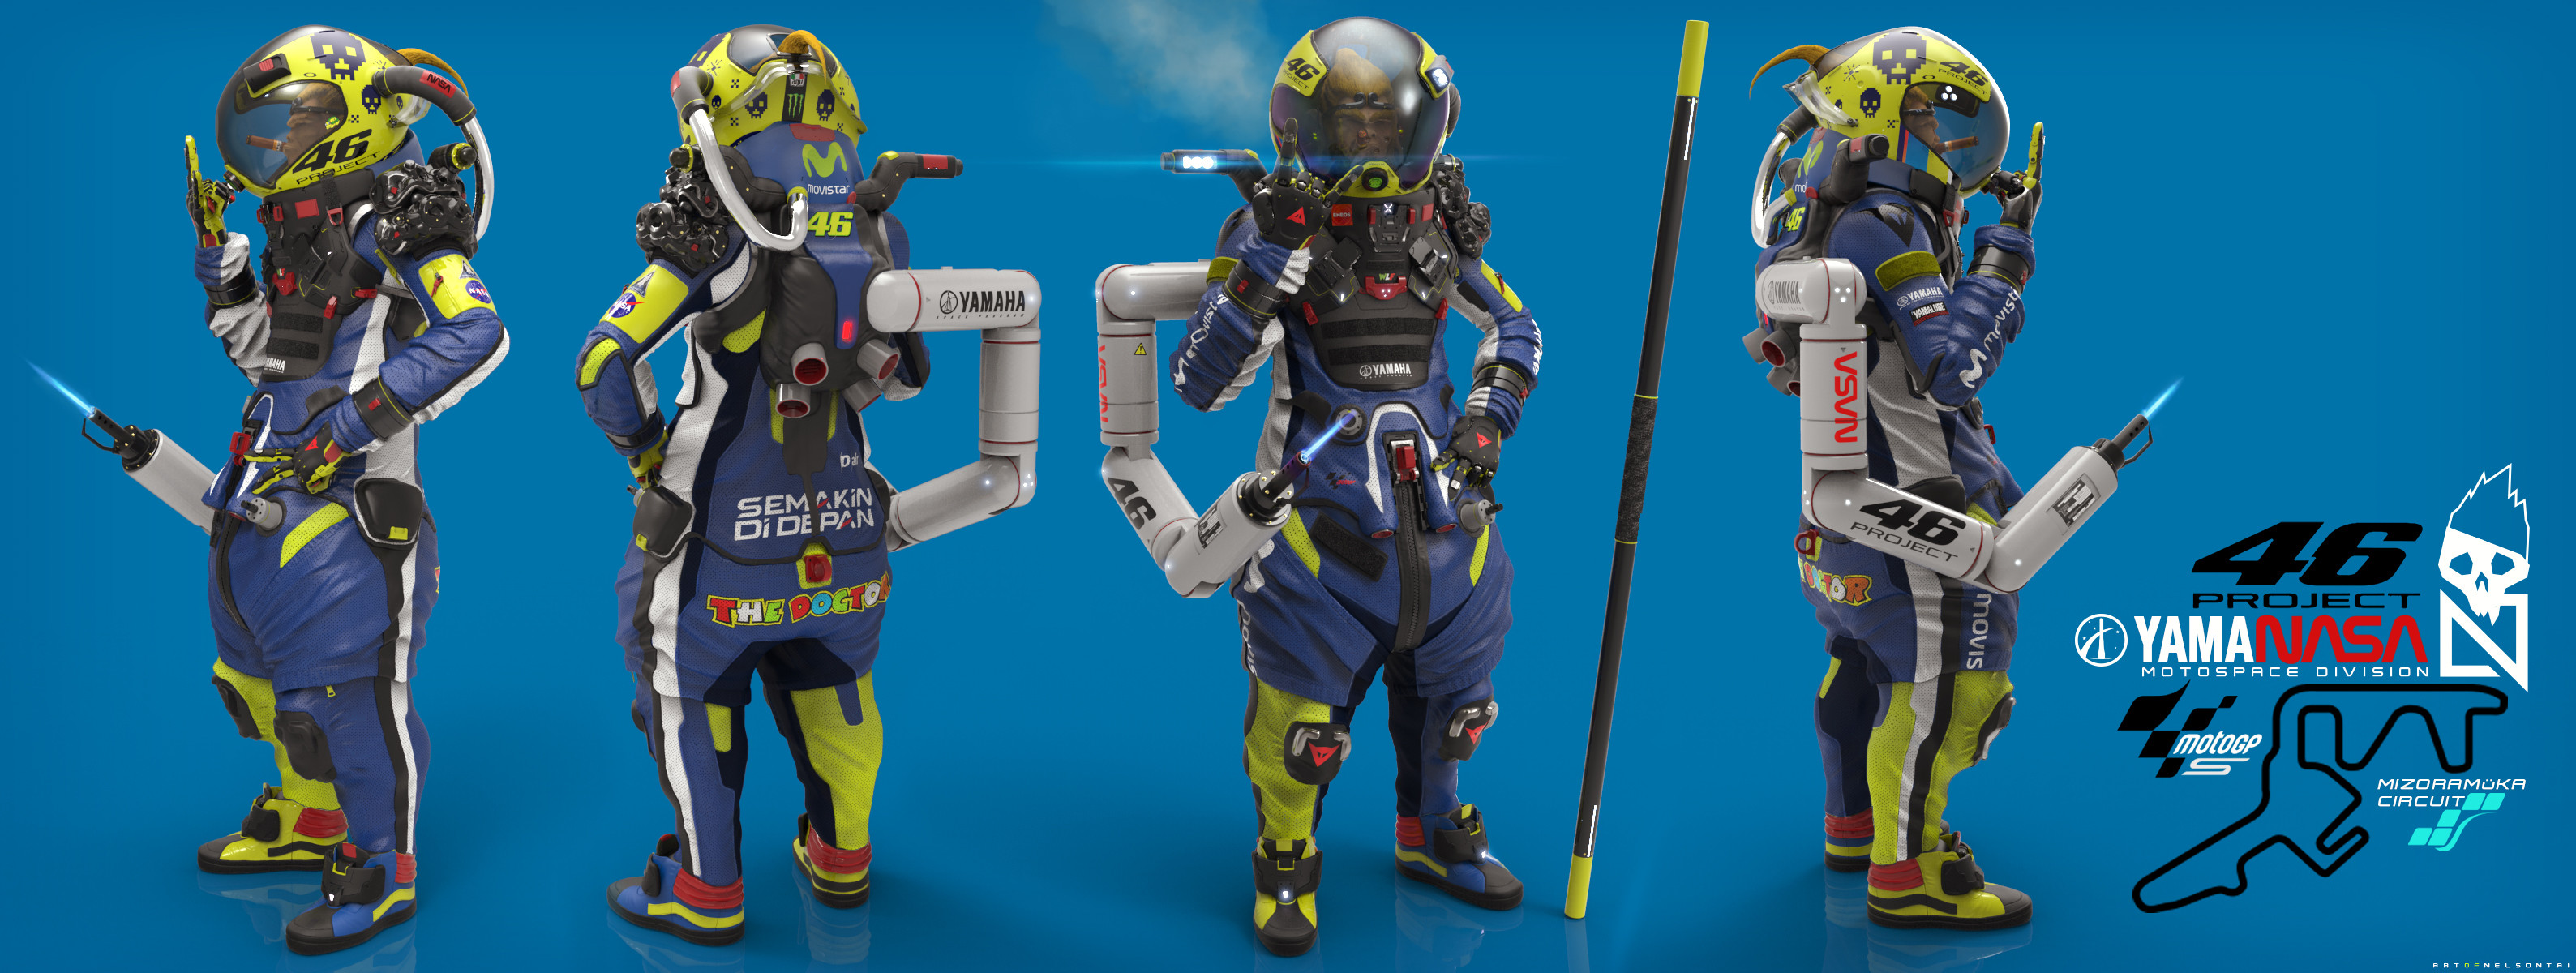 Special VR46 Space rider edition